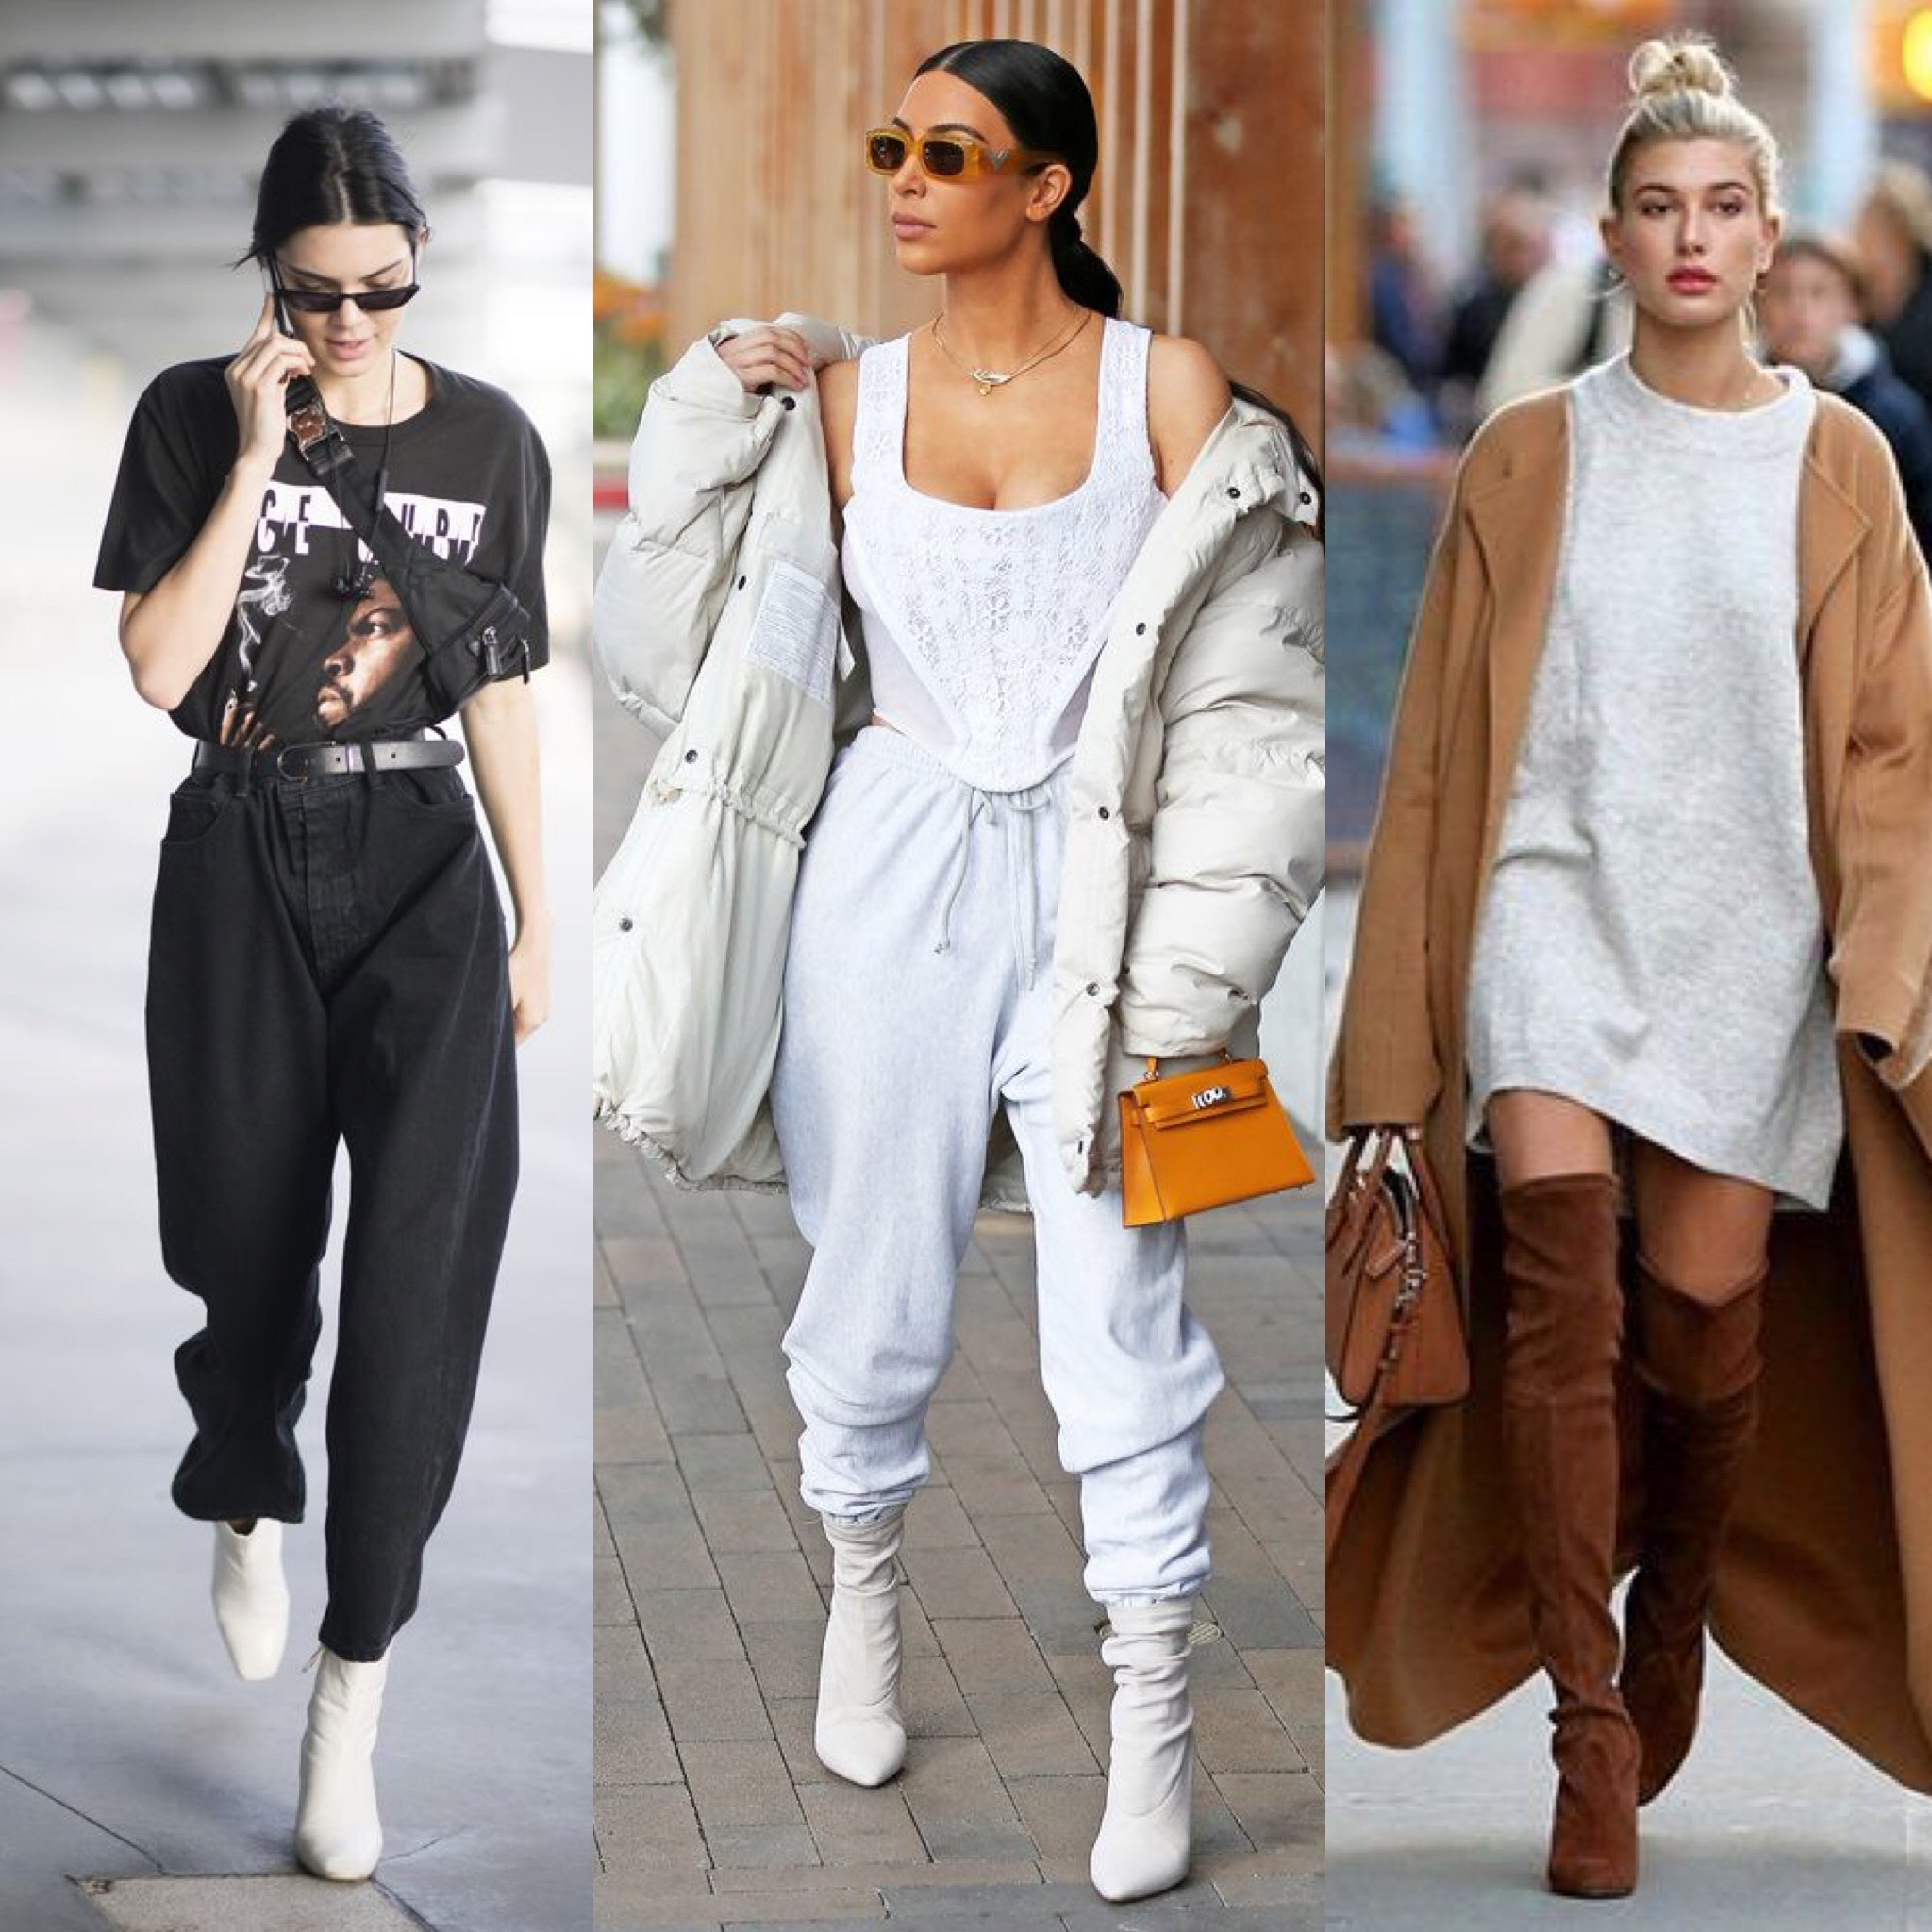 Here is some examples of how these celebs have made the 'baggy' look work.